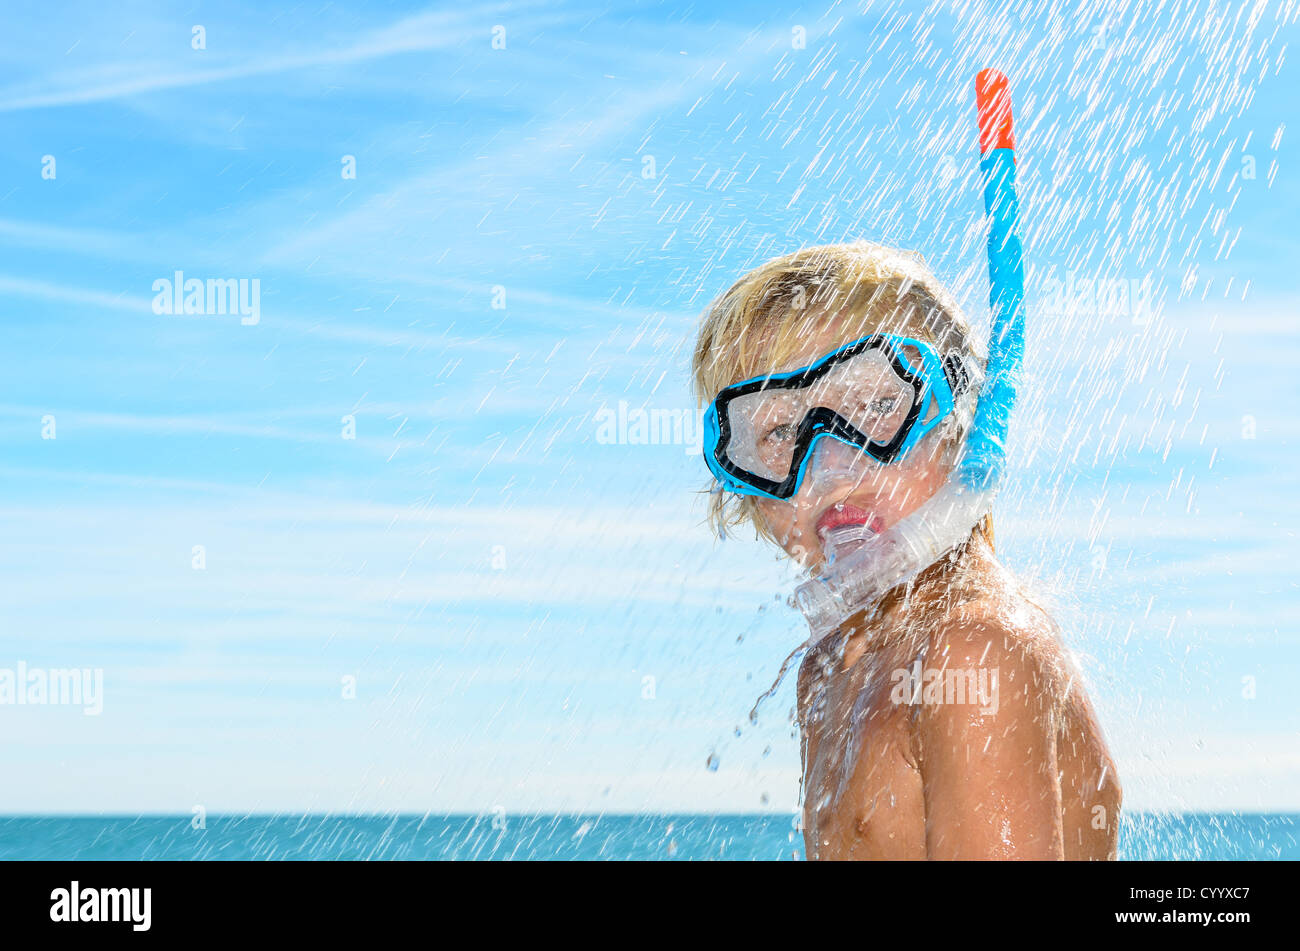 Diving mask immagini diving mask fotos stock alamy - Immagini di dive ...